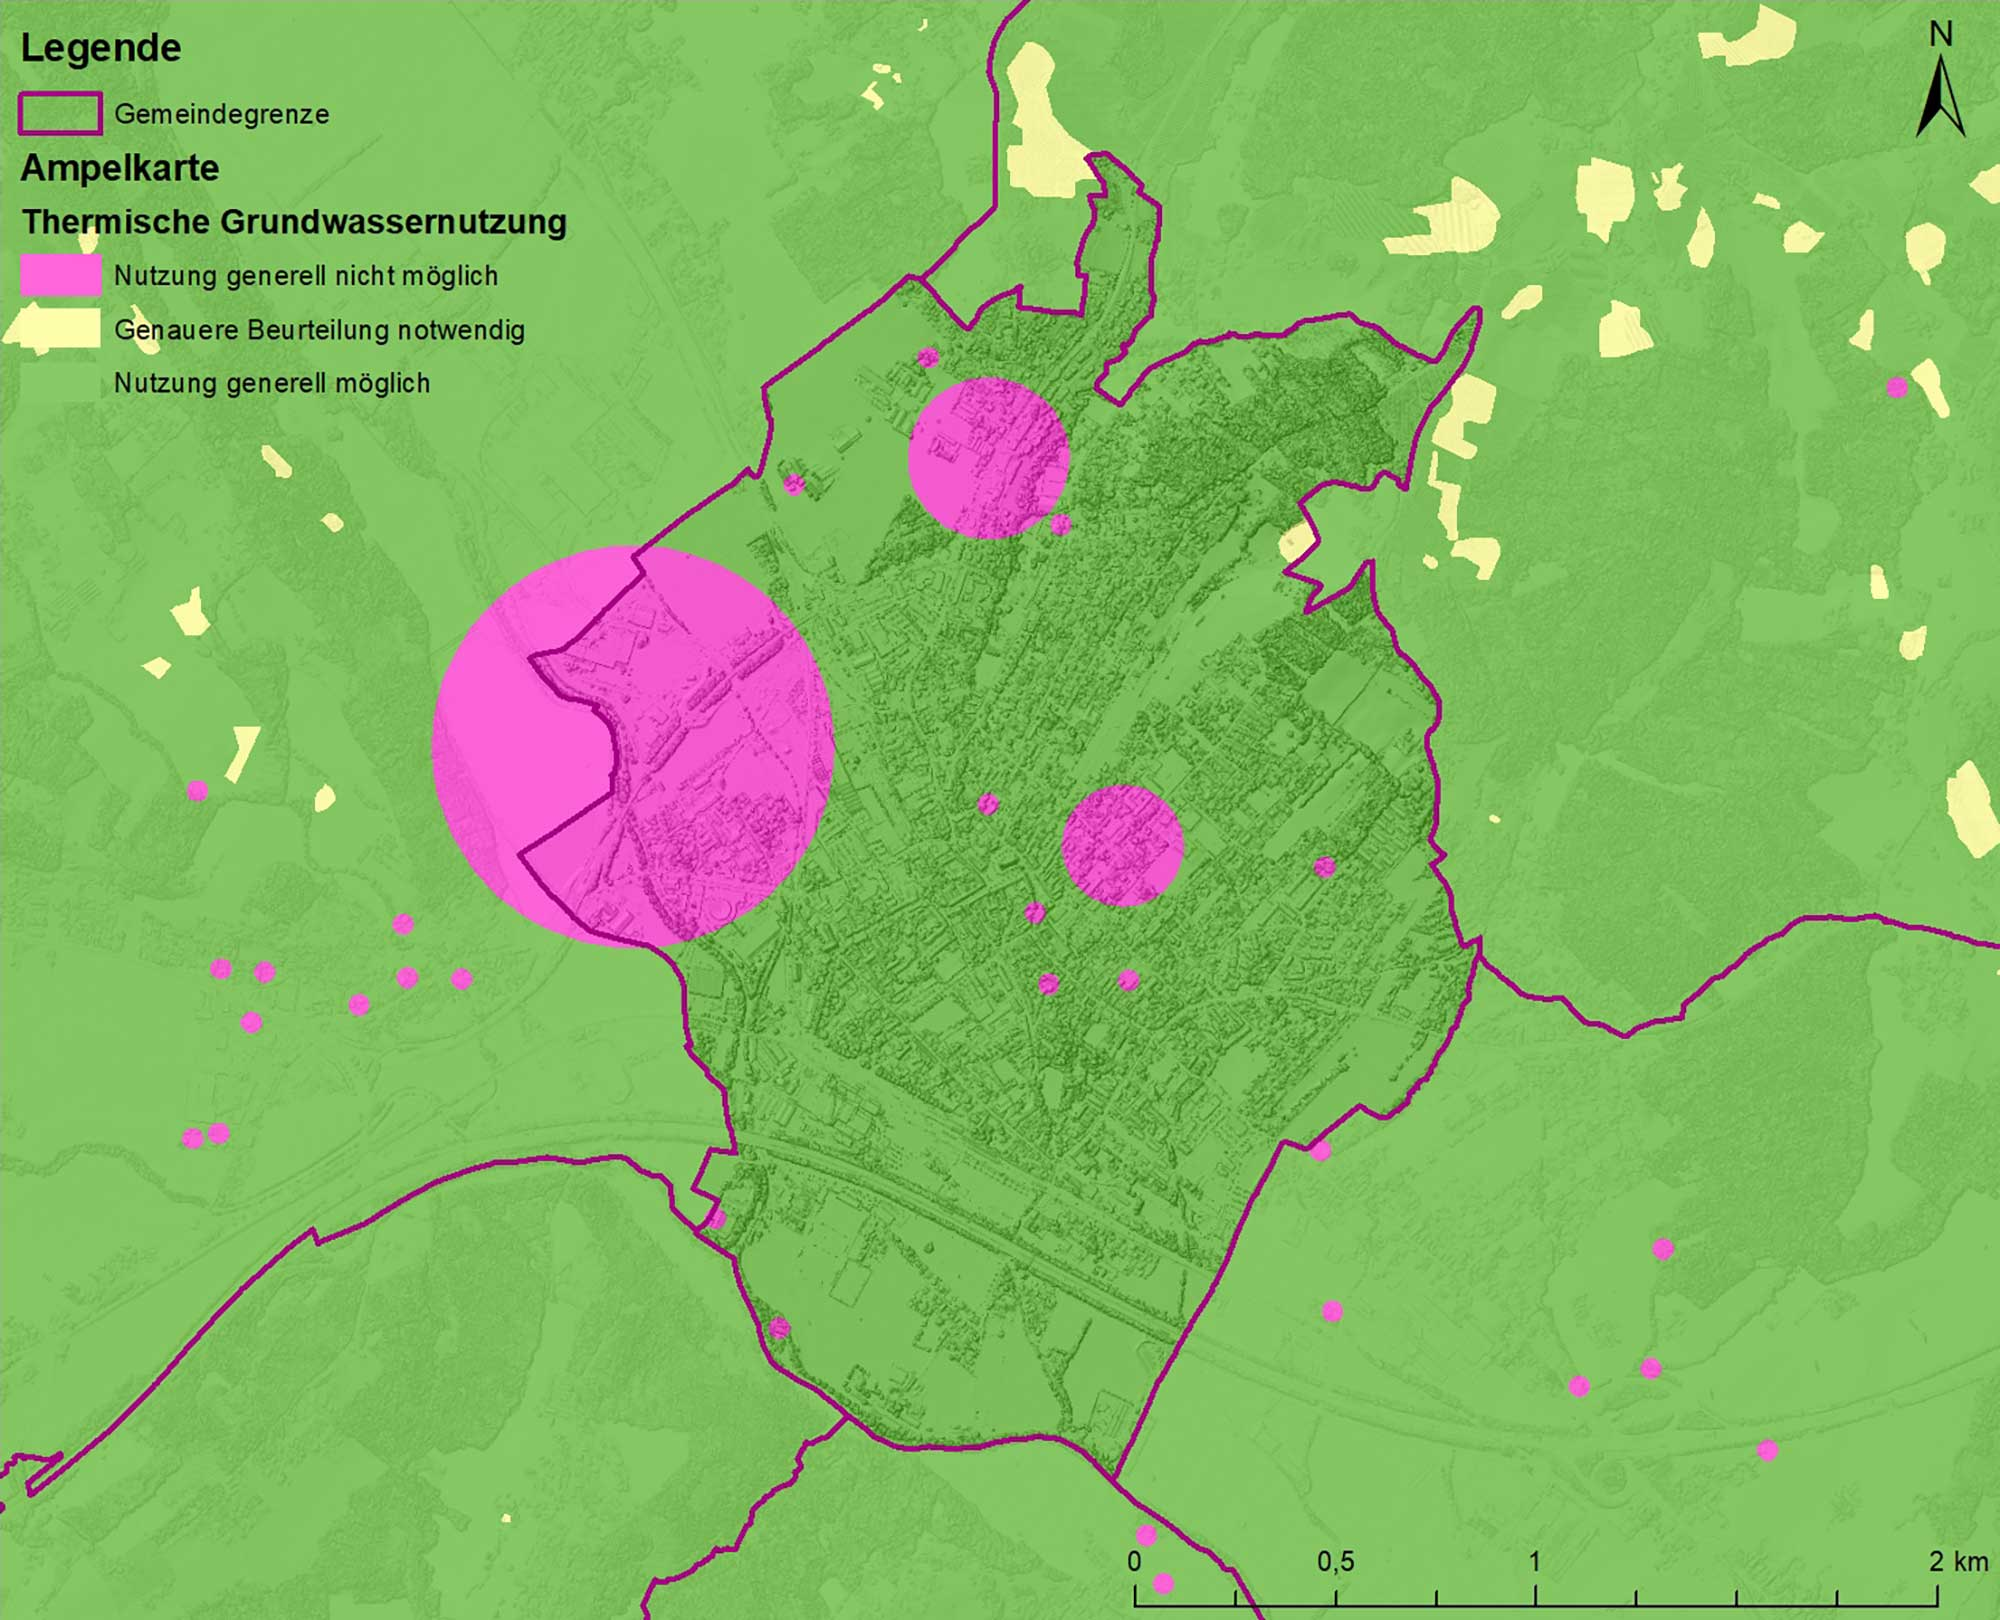 The traffic-light map groups together possible reasons preventing a near-surface geothermal energy system from being set up and indicates locations where they can gener-ally be used (green), where additional information is needed (yellow) or where geothermal heat cannot be used as a general principle (pink). The maps include, for example, karstable rocks, possible landslides or mining areas. Picture: Geological Survey of Austria (GBA)